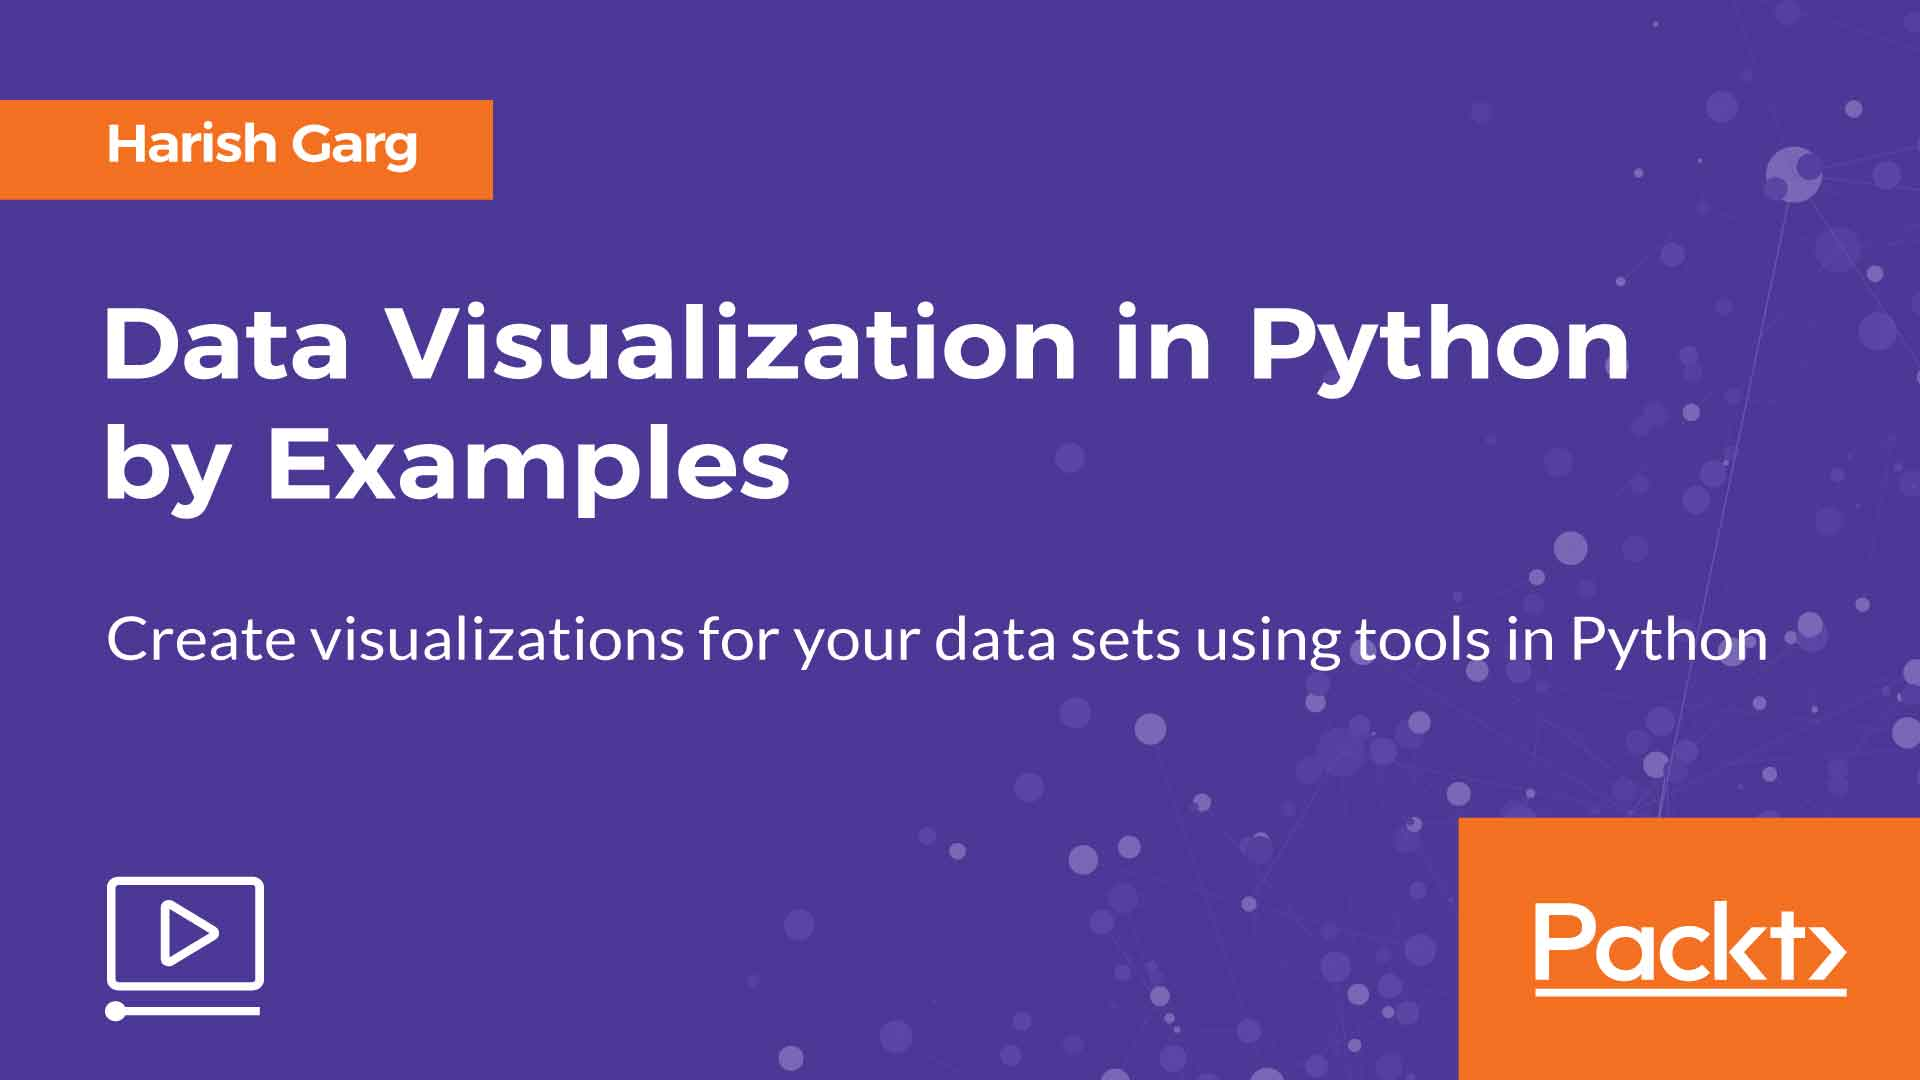 Amazon com: Watch Data Visualization in Python by Examples